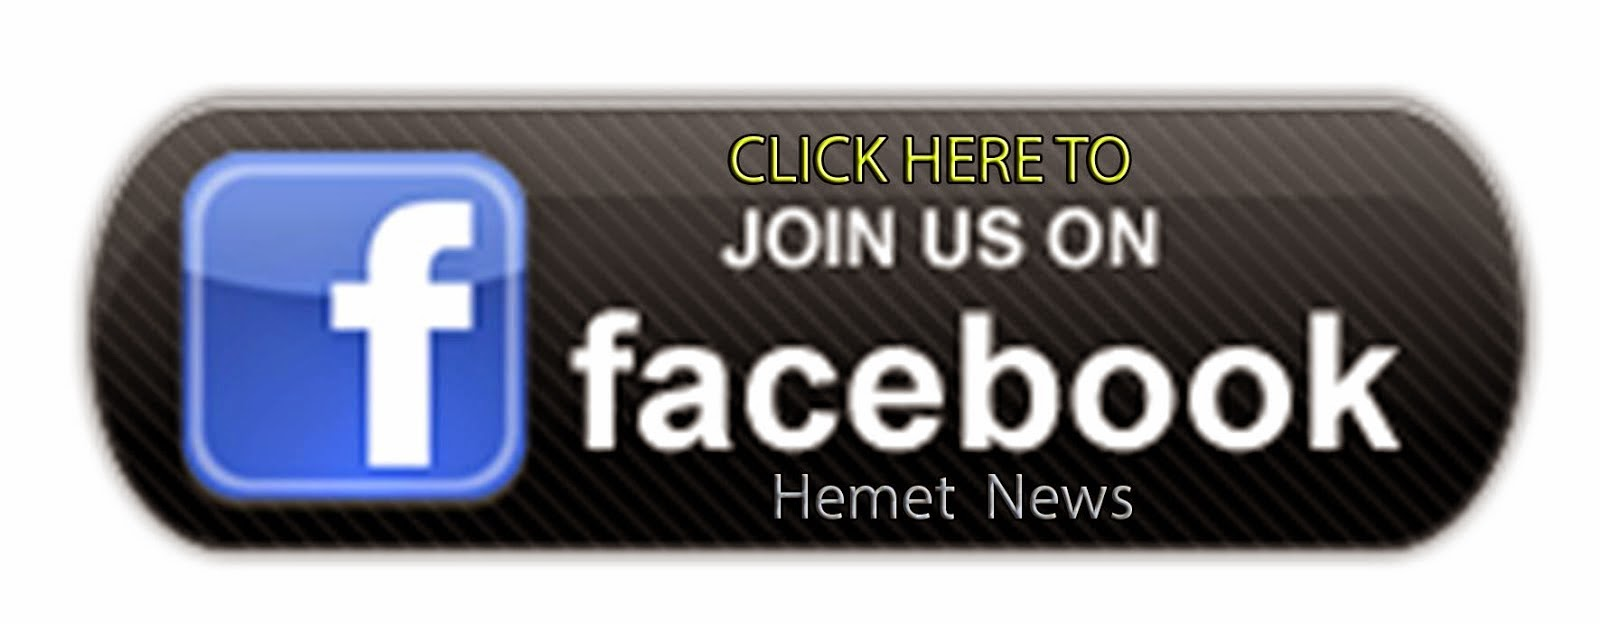 Join Our Facebook Group HEMET NEWS